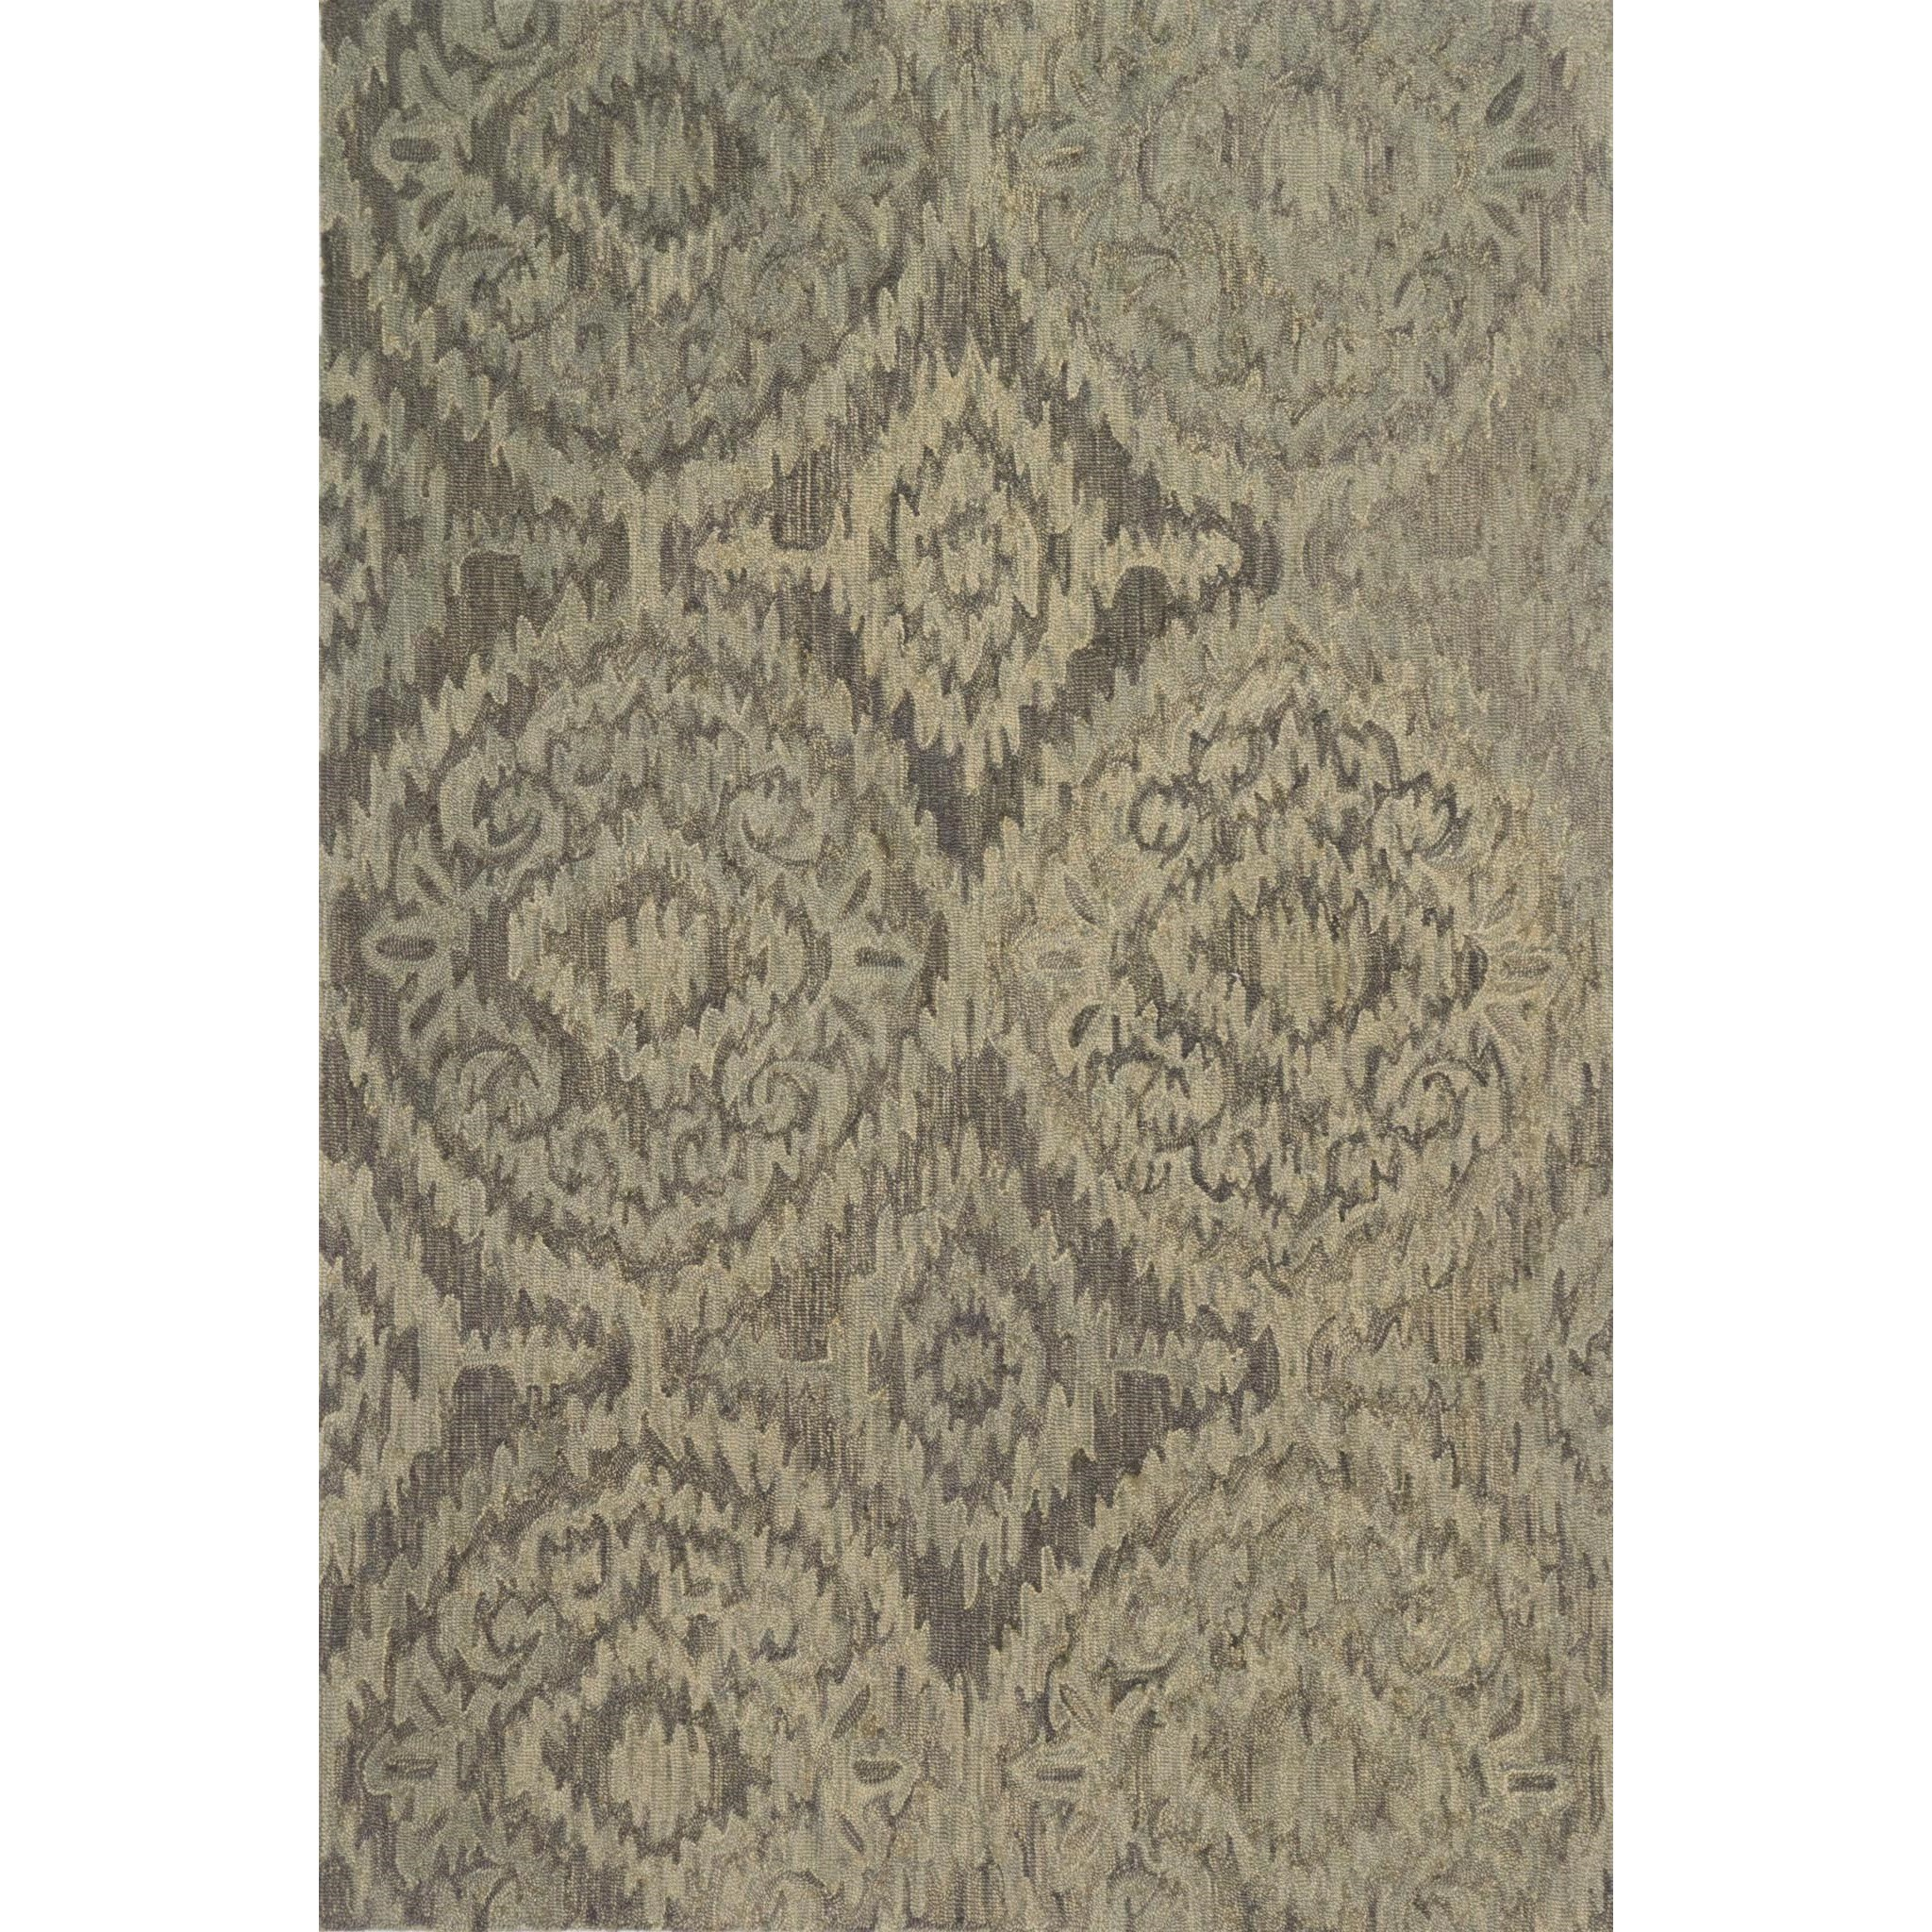 Loloi Rugs Everson 5 0 X 7 6 Grey